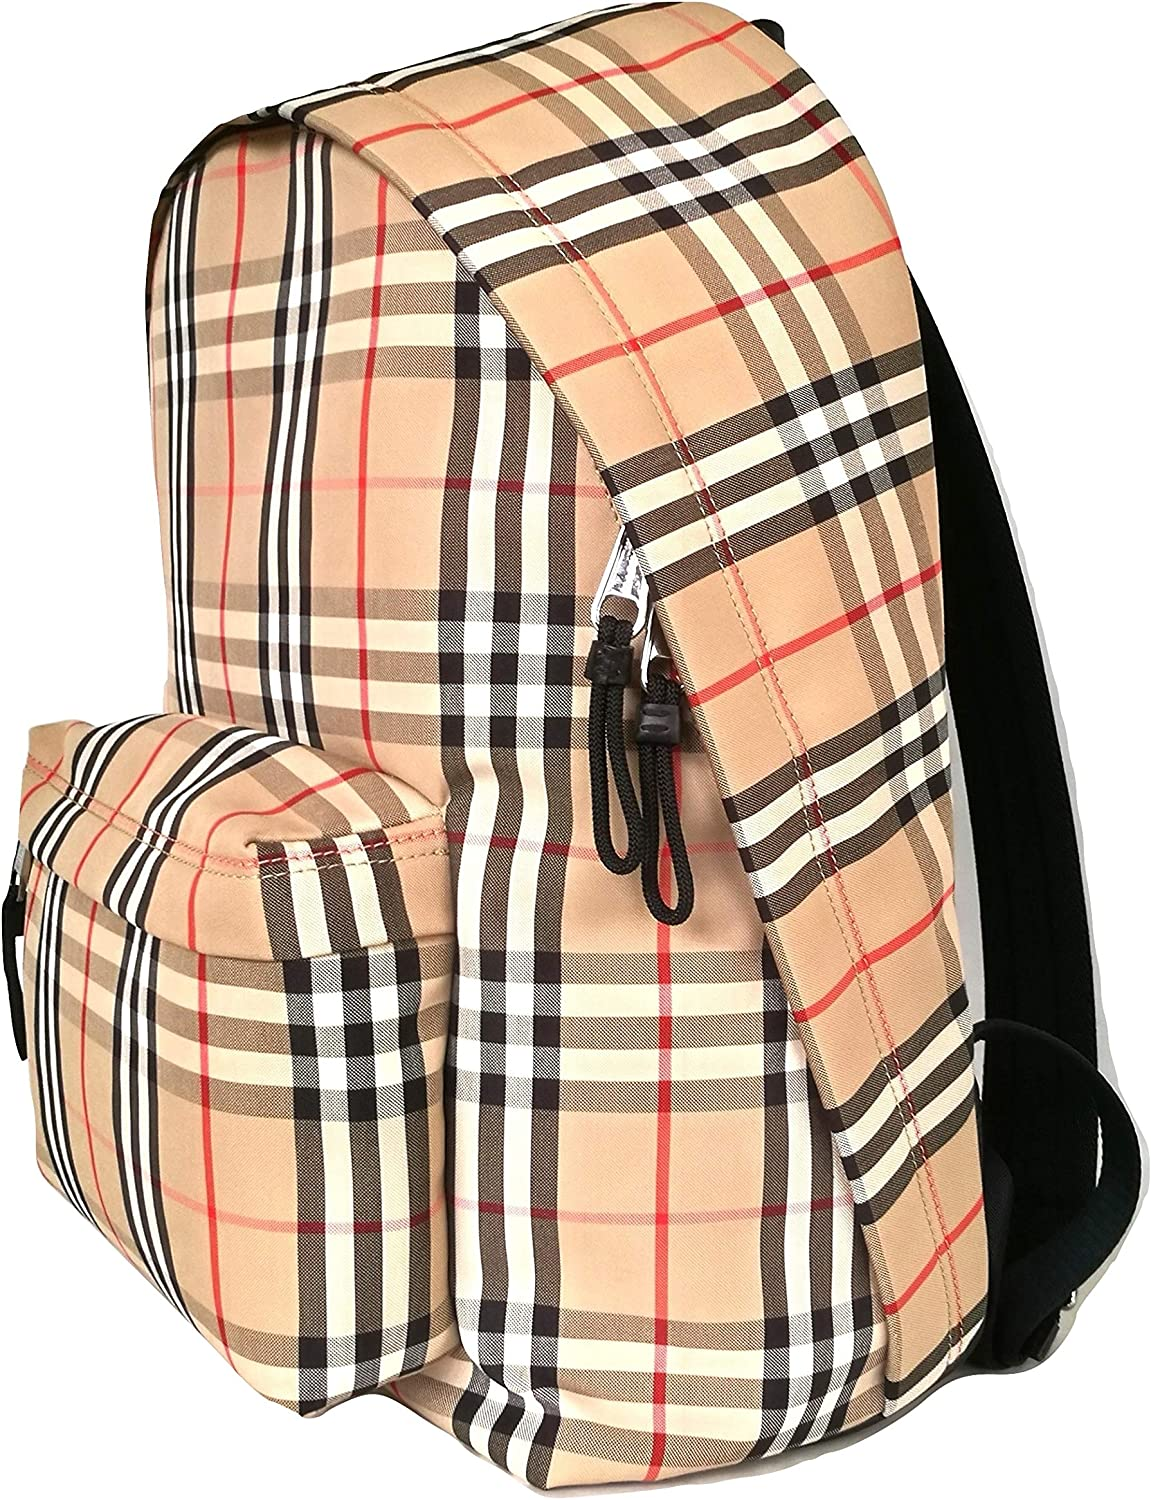 Burberry Jett Womens Signature Vintage Check Backpack Beige Size Large